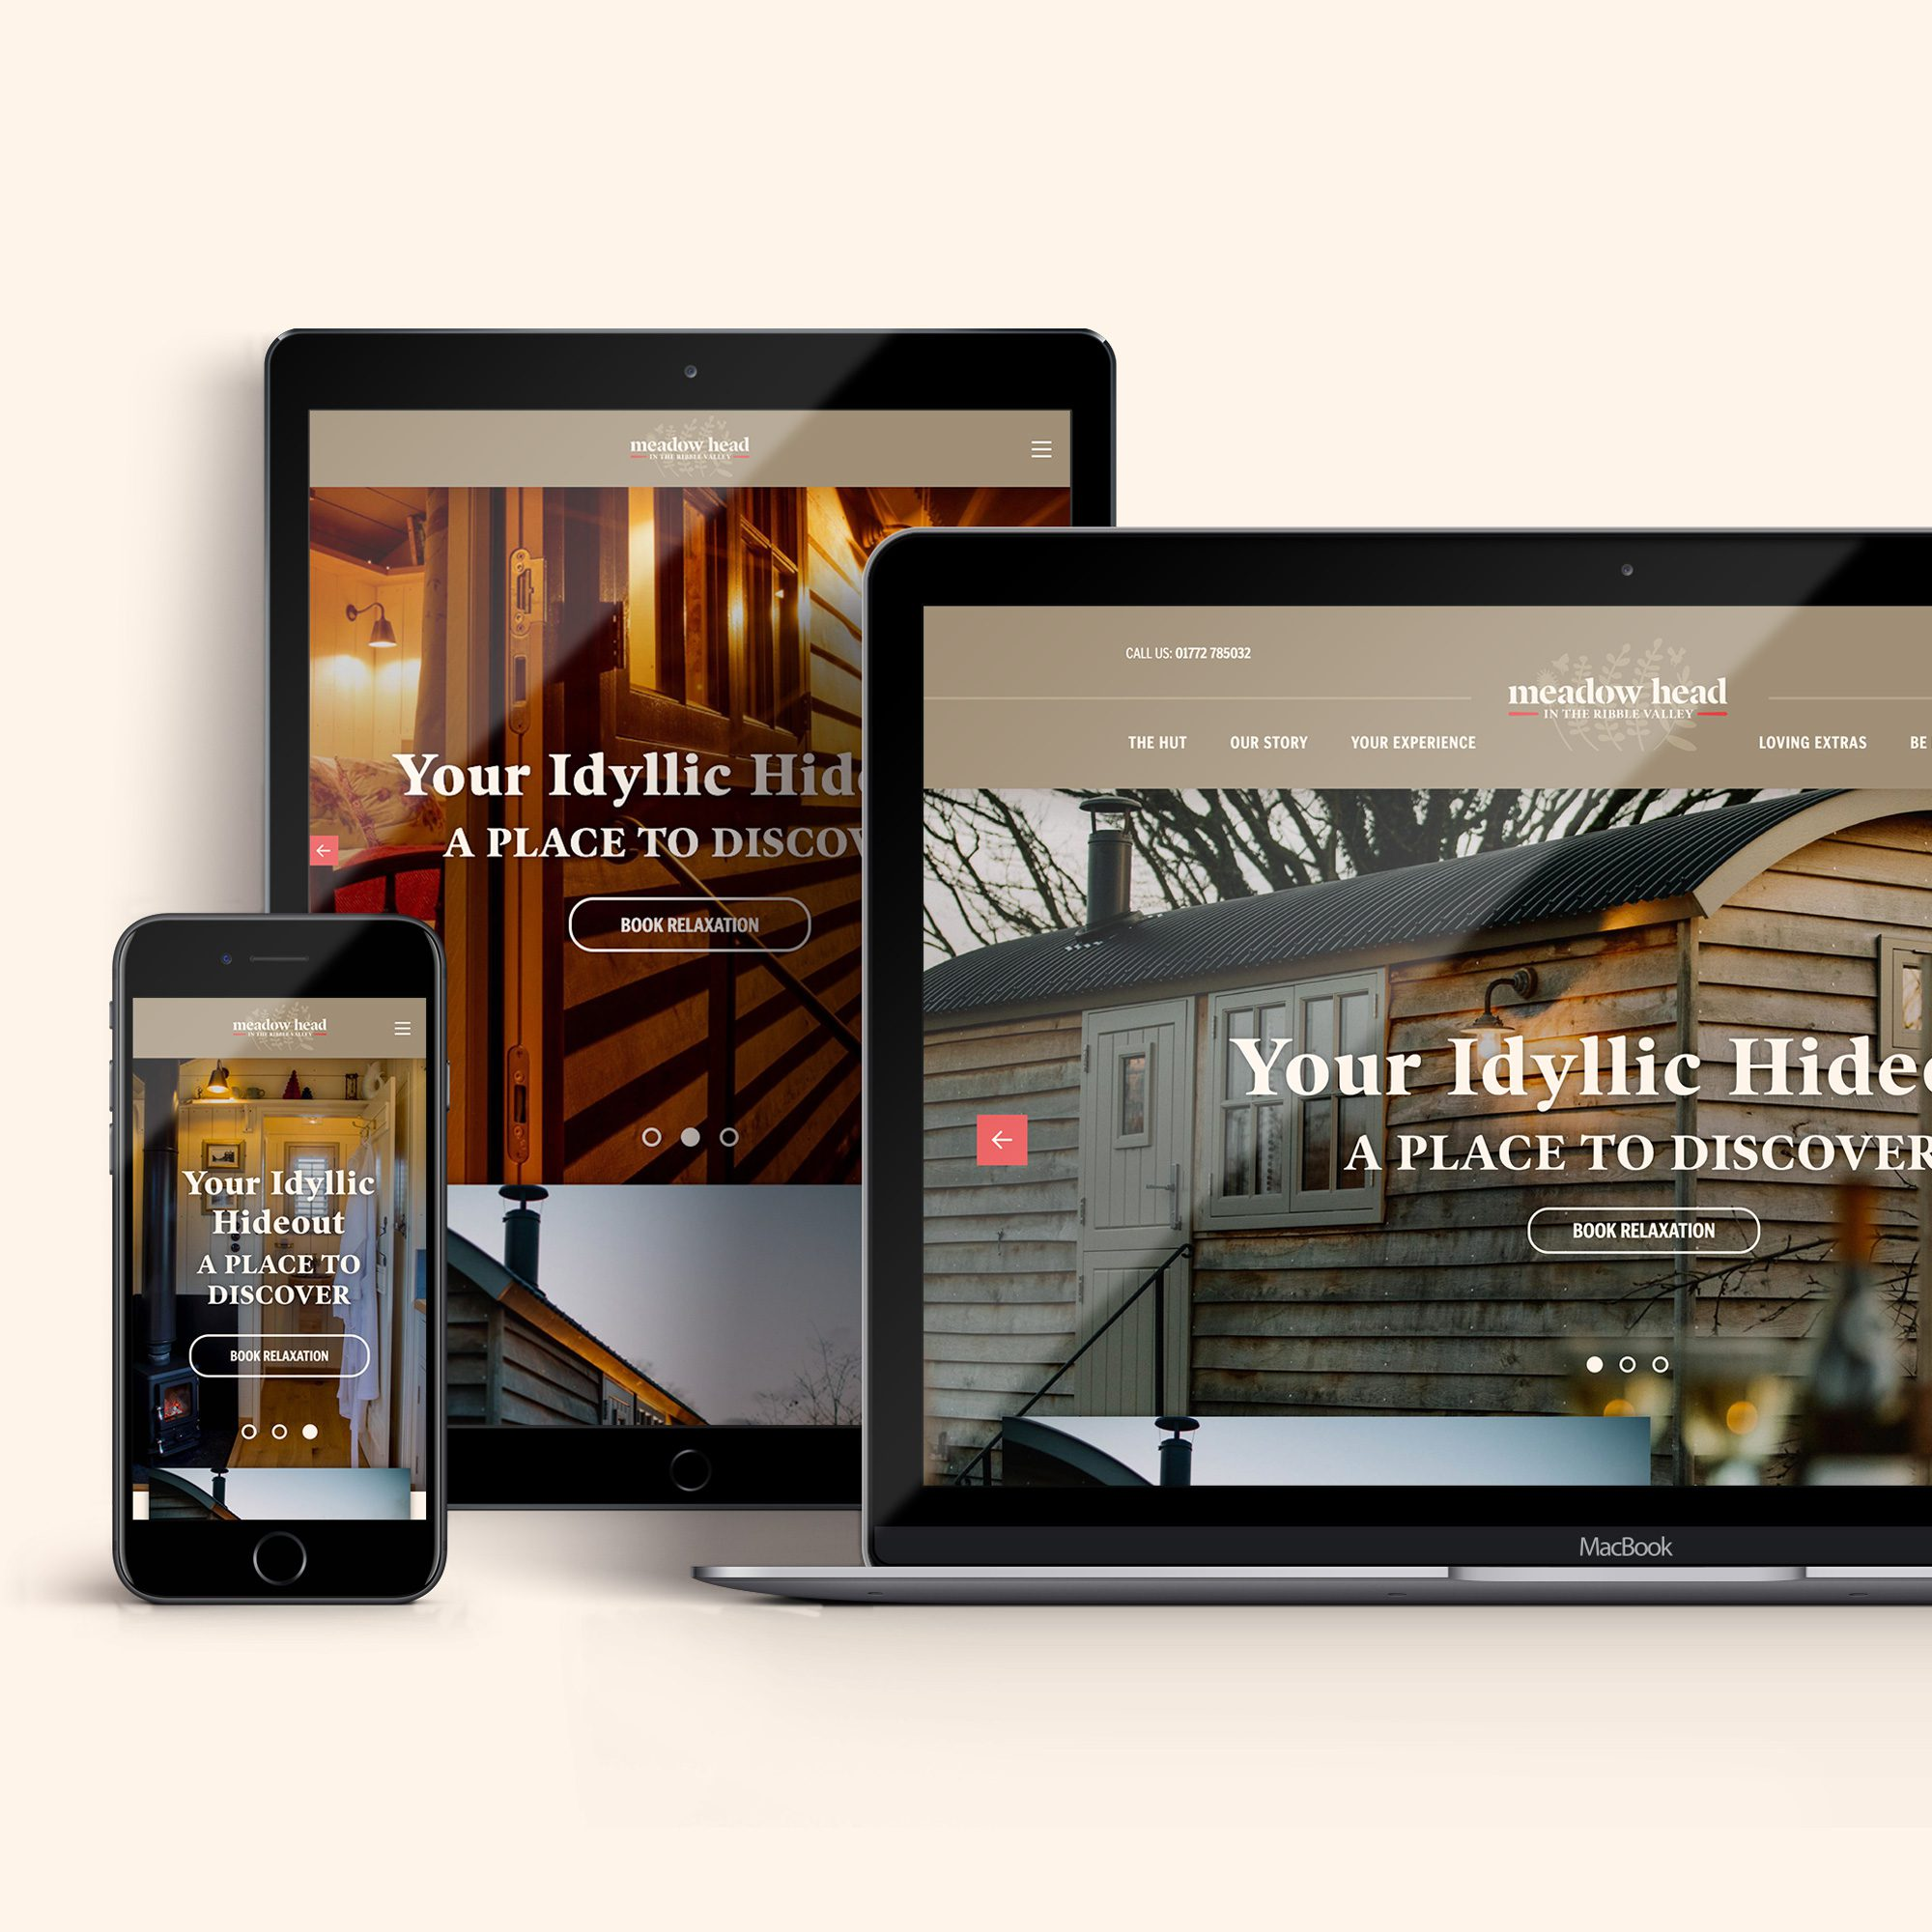 Brand identity and website for Meadow Head in the Ribble Valley